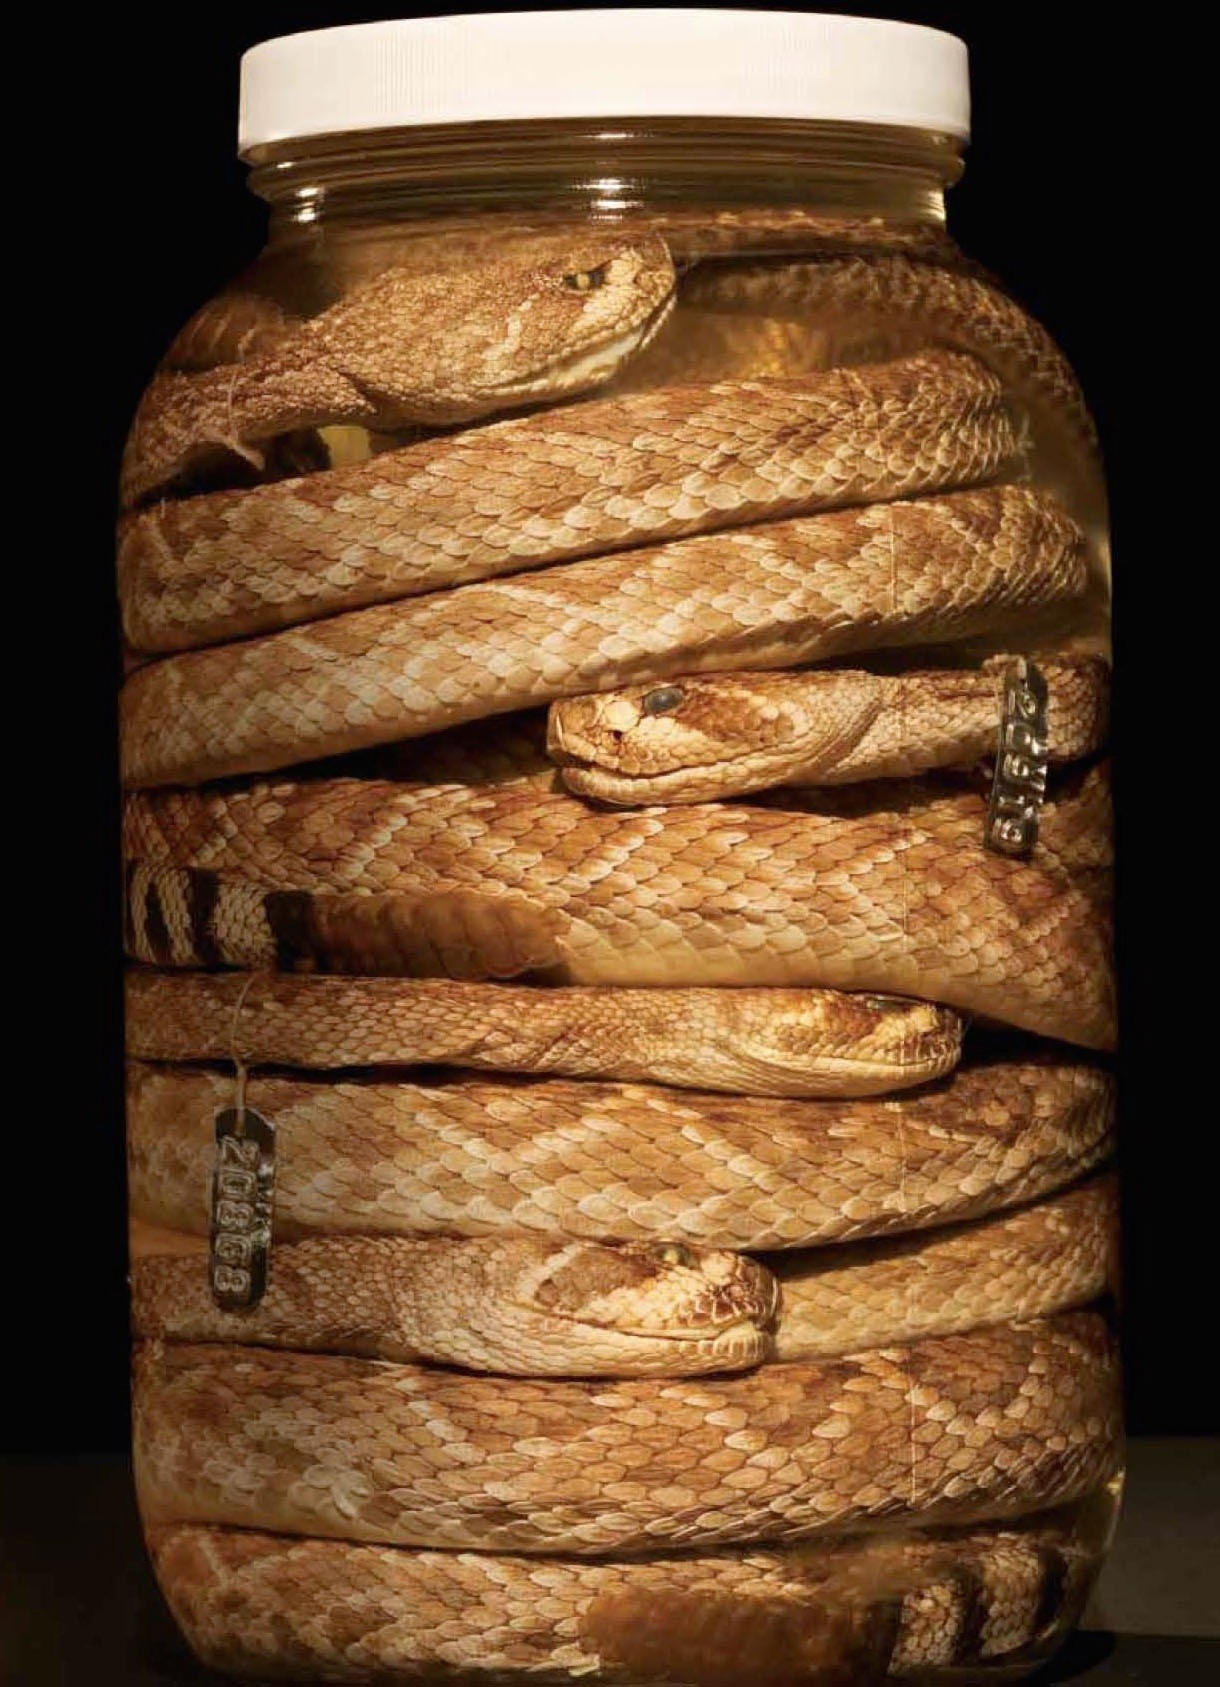 A jar of rattlesnakes from The Nat's Herpetology Department. The Nat has the world's largest collection of rattlesnakes, with more than 40,000 preserved specimens.